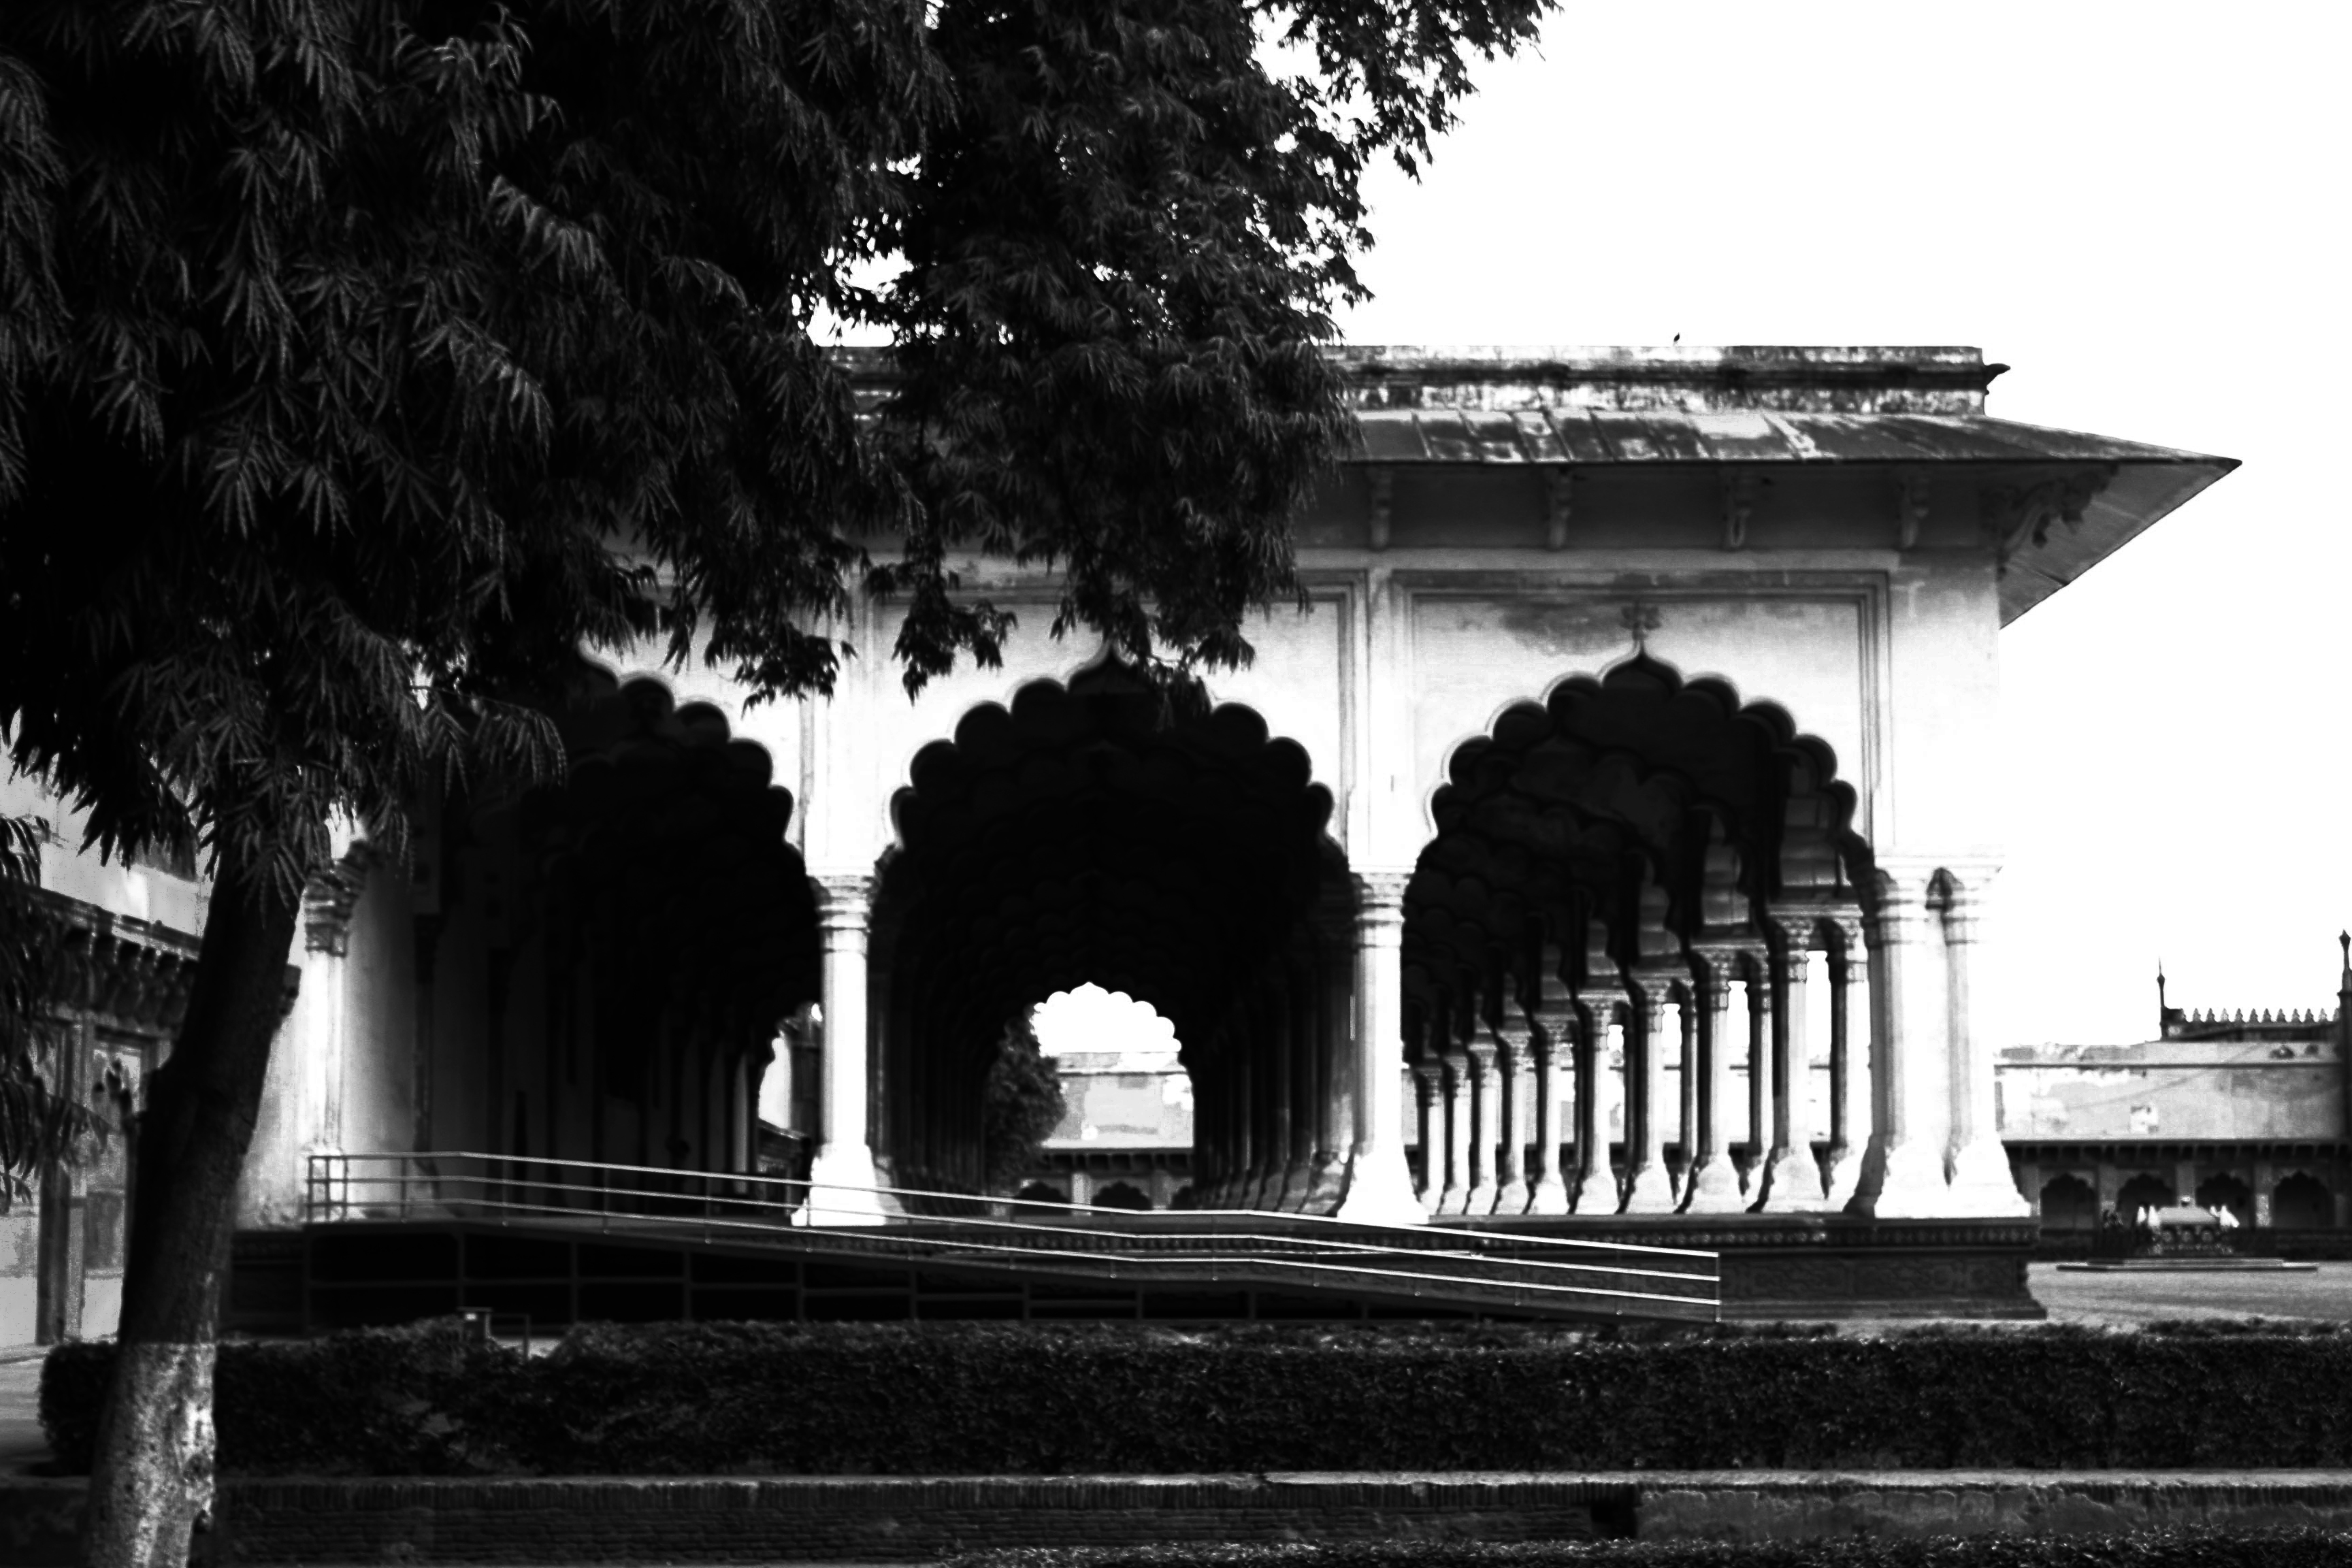 The Fort at Agra - Photo Essay by Amit Khanna (14).jpg